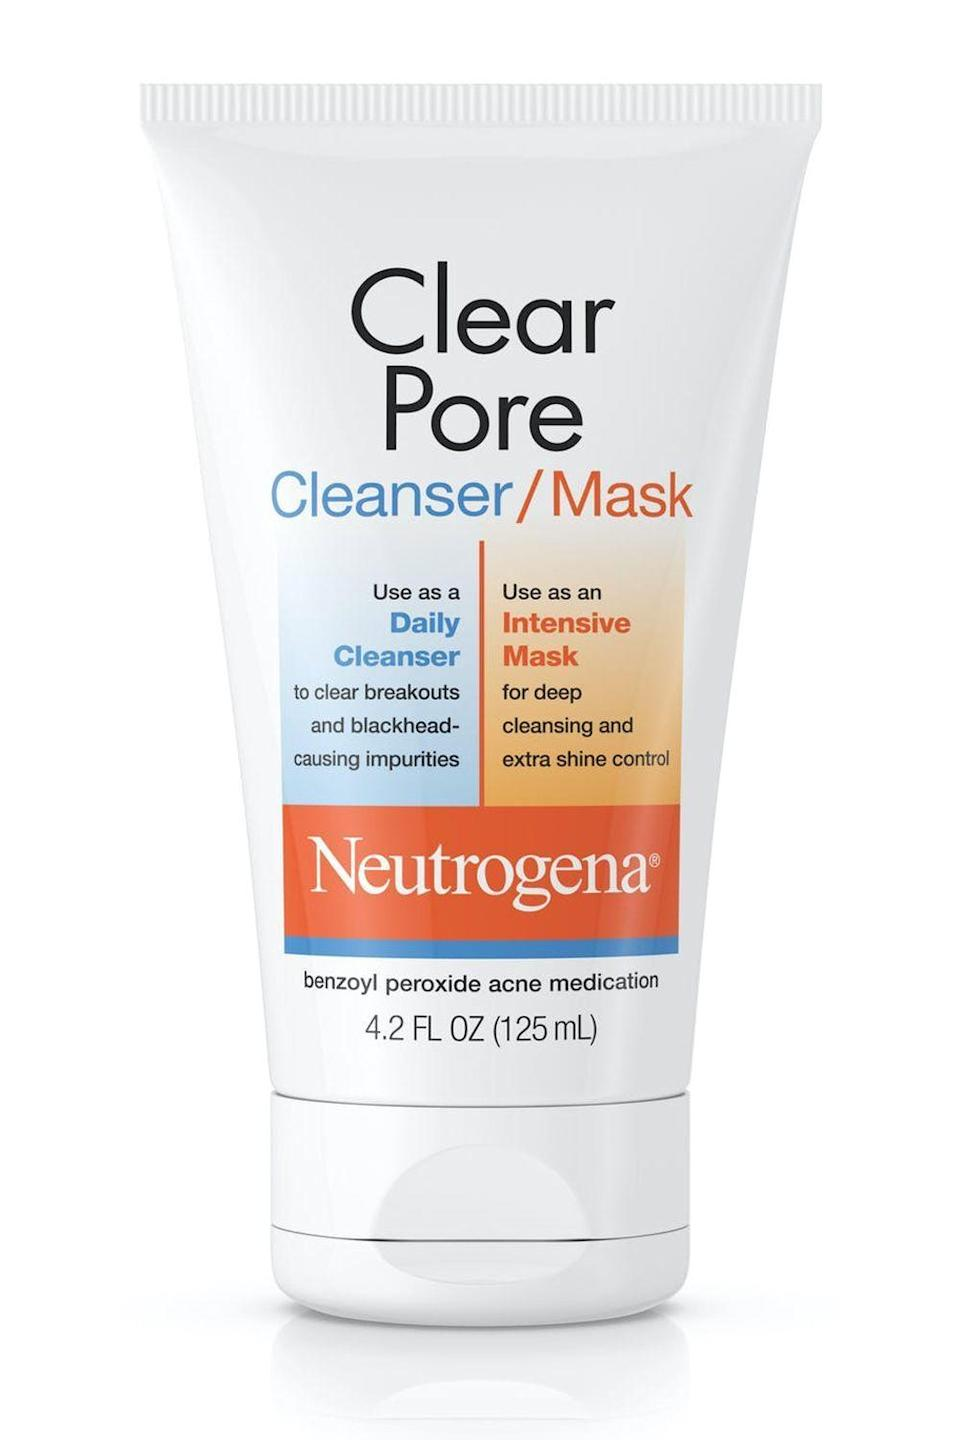 """<p><strong>Neutrogena</strong></p><p>amazon.com</p><p><strong>$10.00</strong></p><p><a href=""""http://www.amazon.com/dp/B00UOLF16I?tag=syn-yahoo-20&ascsubtag=%5Bartid%7C10049.g.33369976%5Bsrc%7Cyahoo-us"""" rel=""""nofollow noopener"""" target=""""_blank"""" data-ylk=""""slk:Shop Now"""" class=""""link rapid-noclick-resp"""">Shop Now</a></p><p>You can use this hybrid 3.5 percent benzoyl peroxide treatment two ways: as <strong>a daily cleanser or as an intensive <a href=""""https://www.cosmopolitan.com/style-beauty/beauty/g10285431/best-face-masks/"""" rel=""""nofollow noopener"""" target=""""_blank"""" data-ylk=""""slk:face mask"""" class=""""link rapid-noclick-resp"""">face mask</a></strong>. Wash with it morning and night (or just once a day for dry skin) to clear blackheads and whiteheads, or use it twice a week as a deep-cleaning and shine-controlling mask for up to five minutes.</p>"""